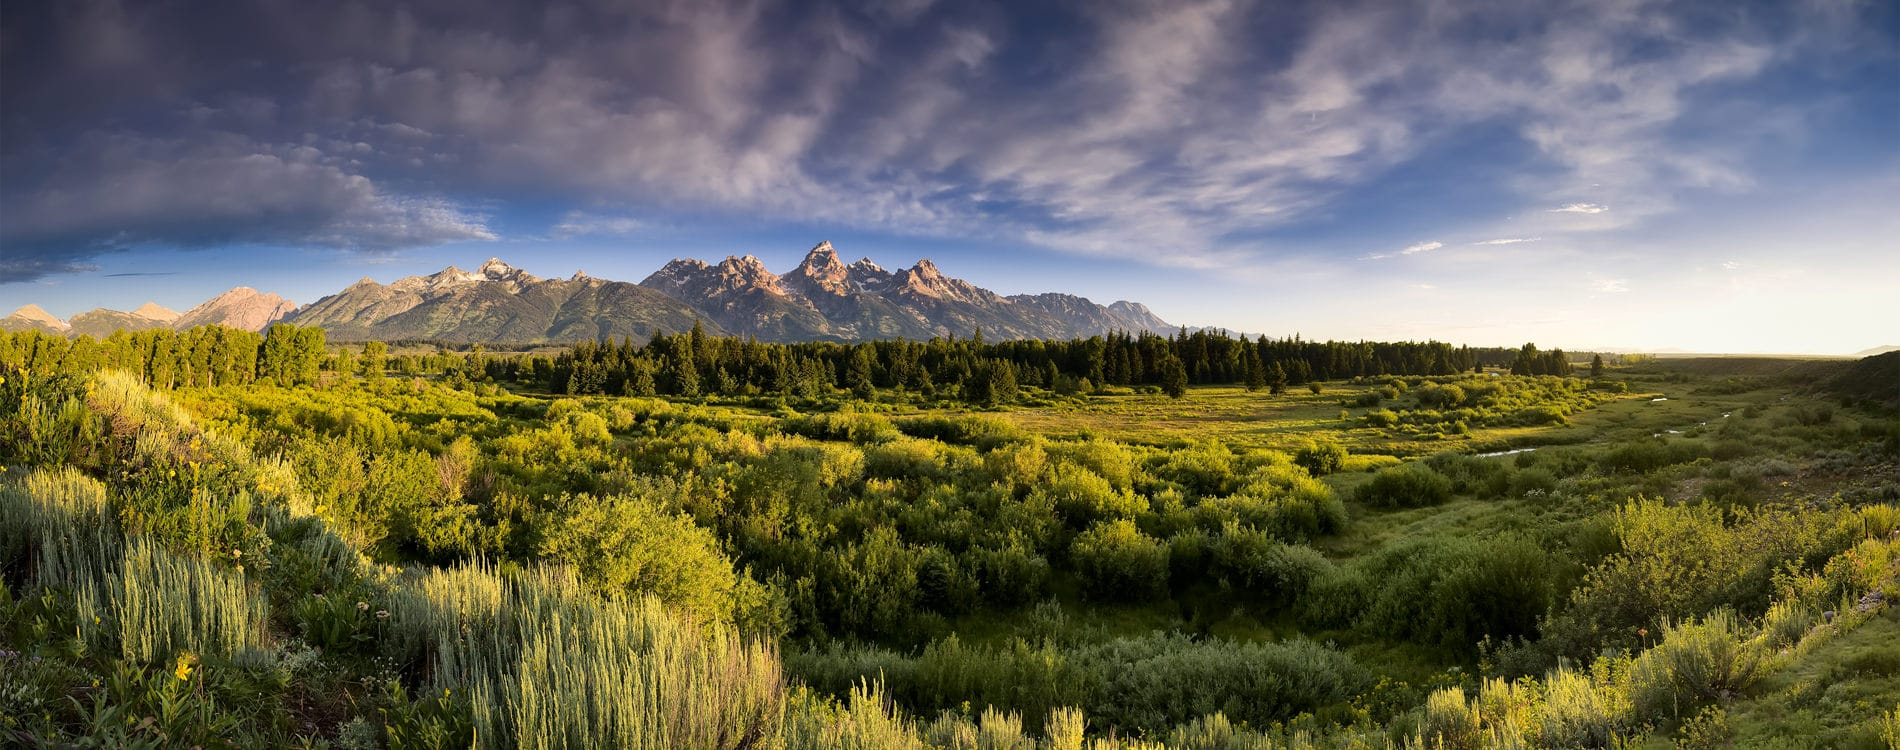 Sunrise at Blacktail Ponds in Grand Teton Park Jackson Wyoming